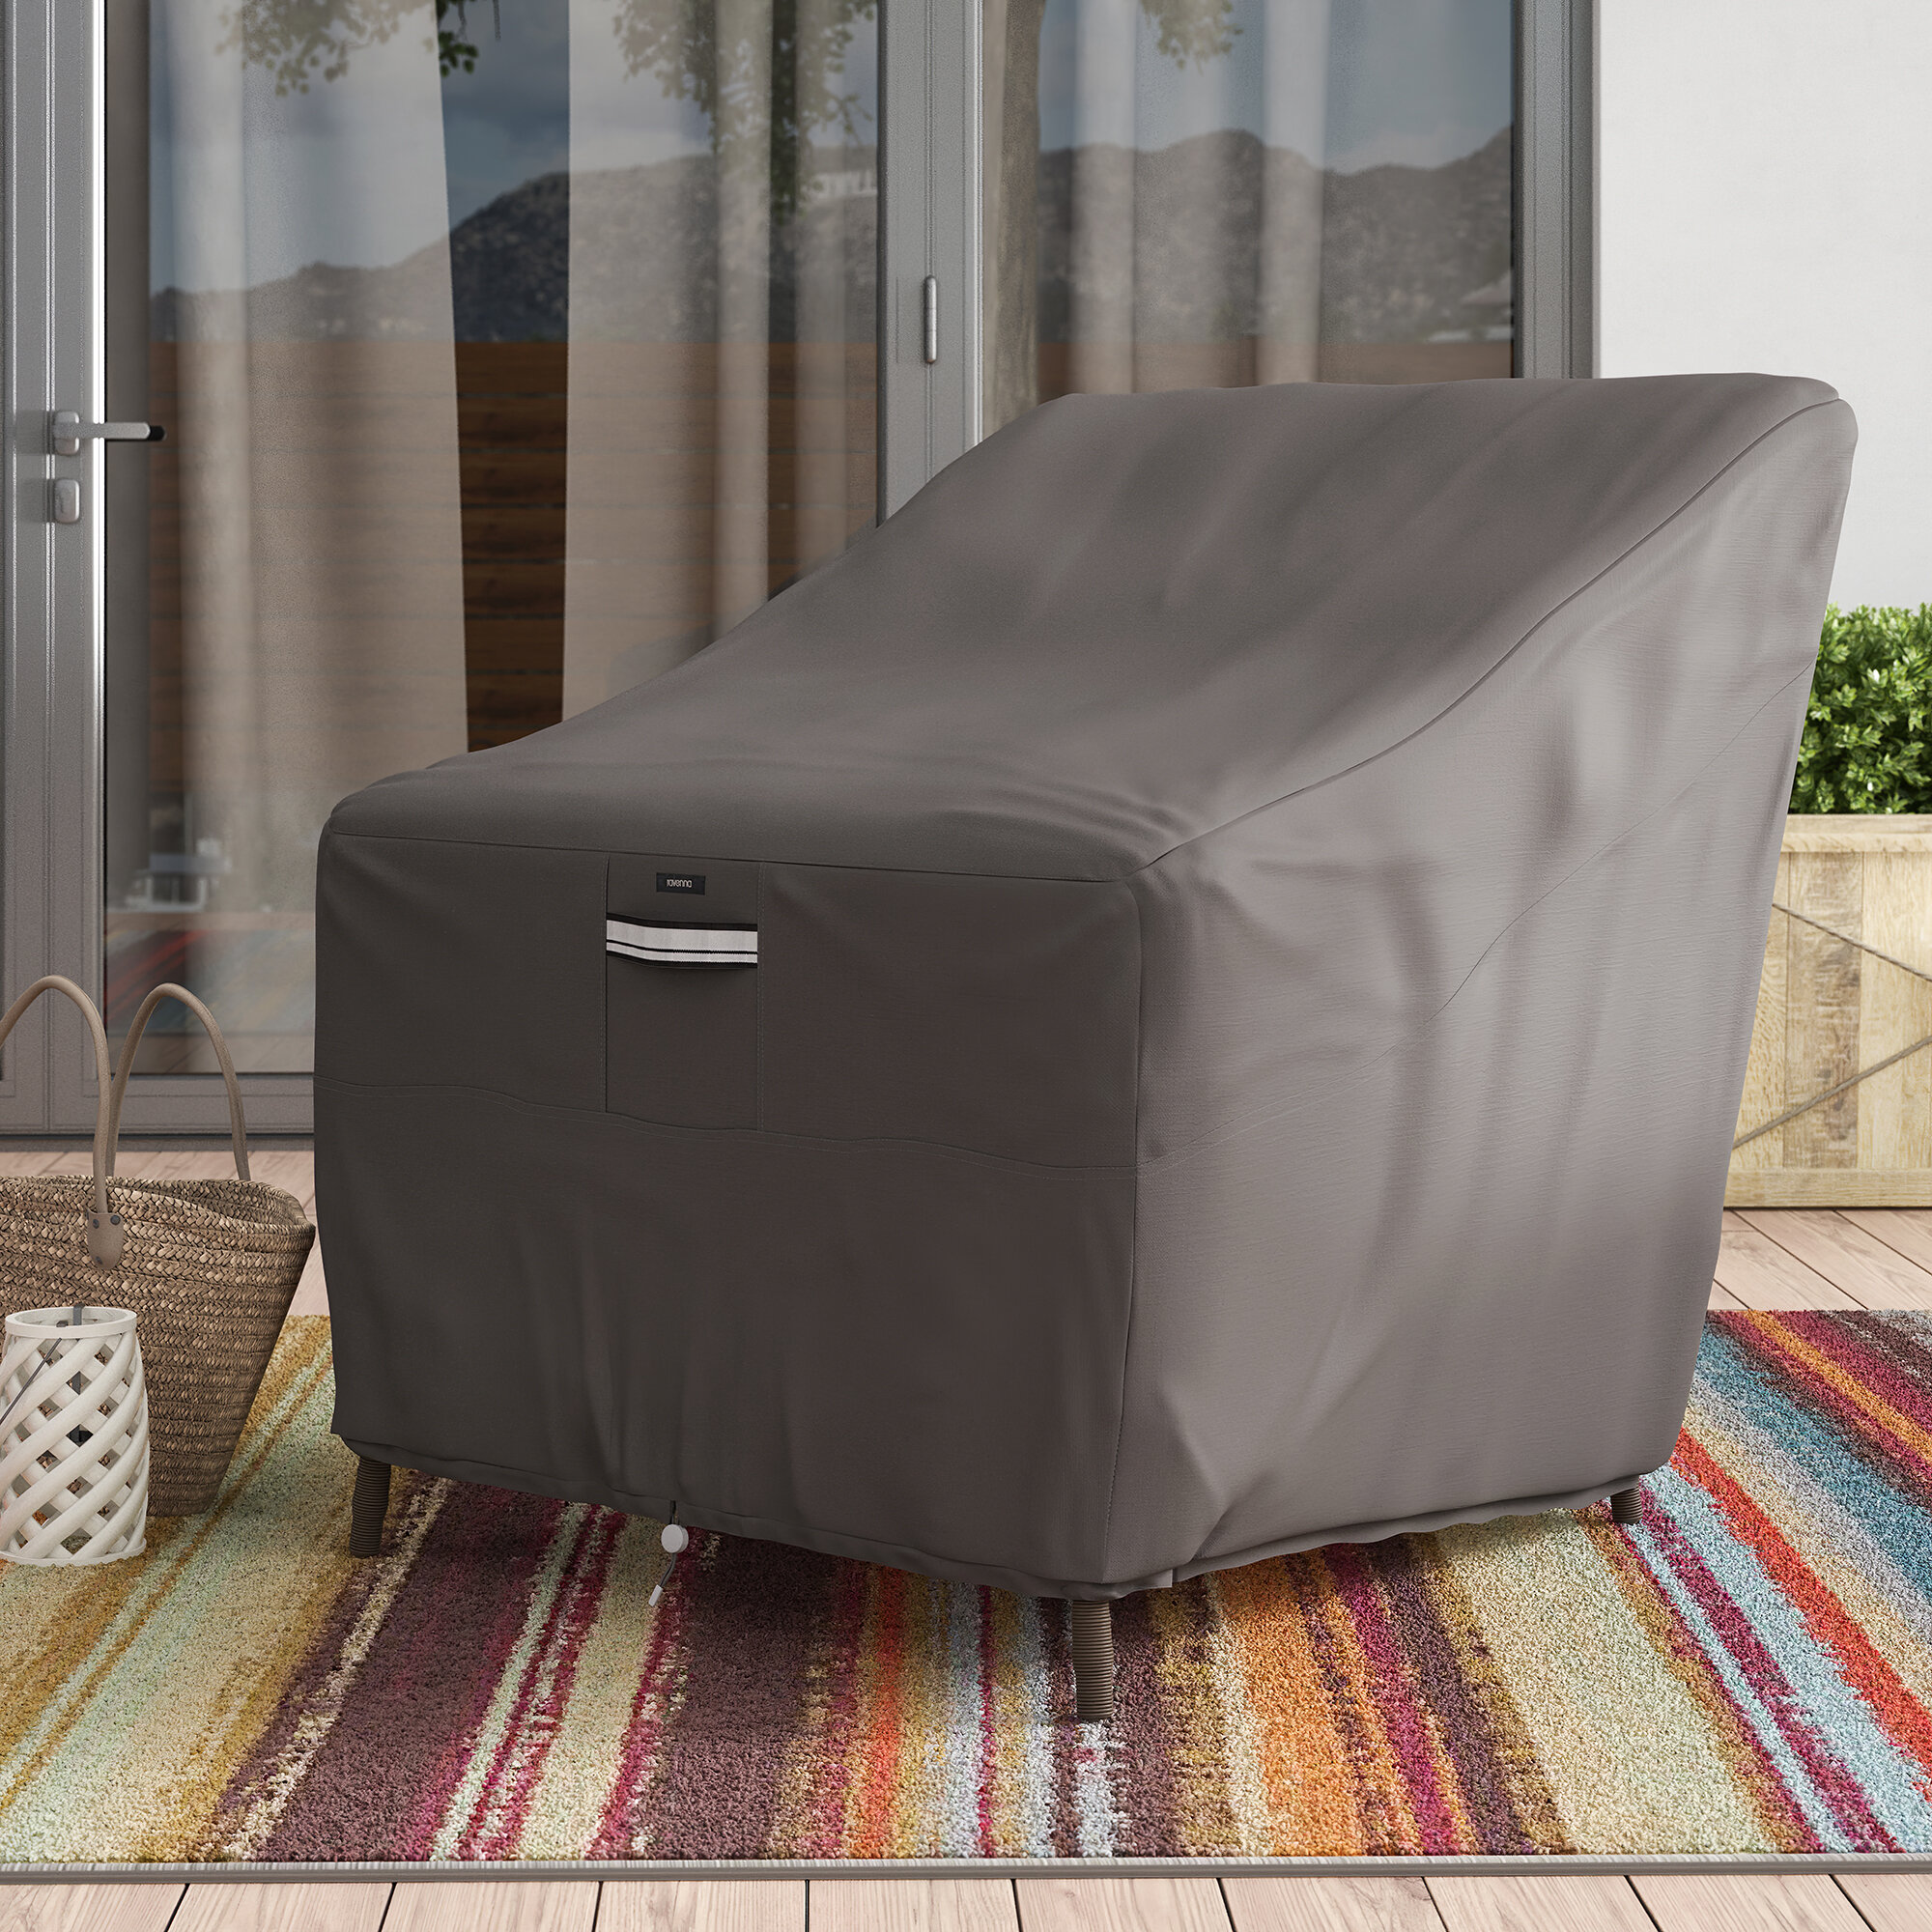 Picture of: Arlmont Co Water Resistant Patio Chair Cover With 7 Year Warranty Reviews Wayfair